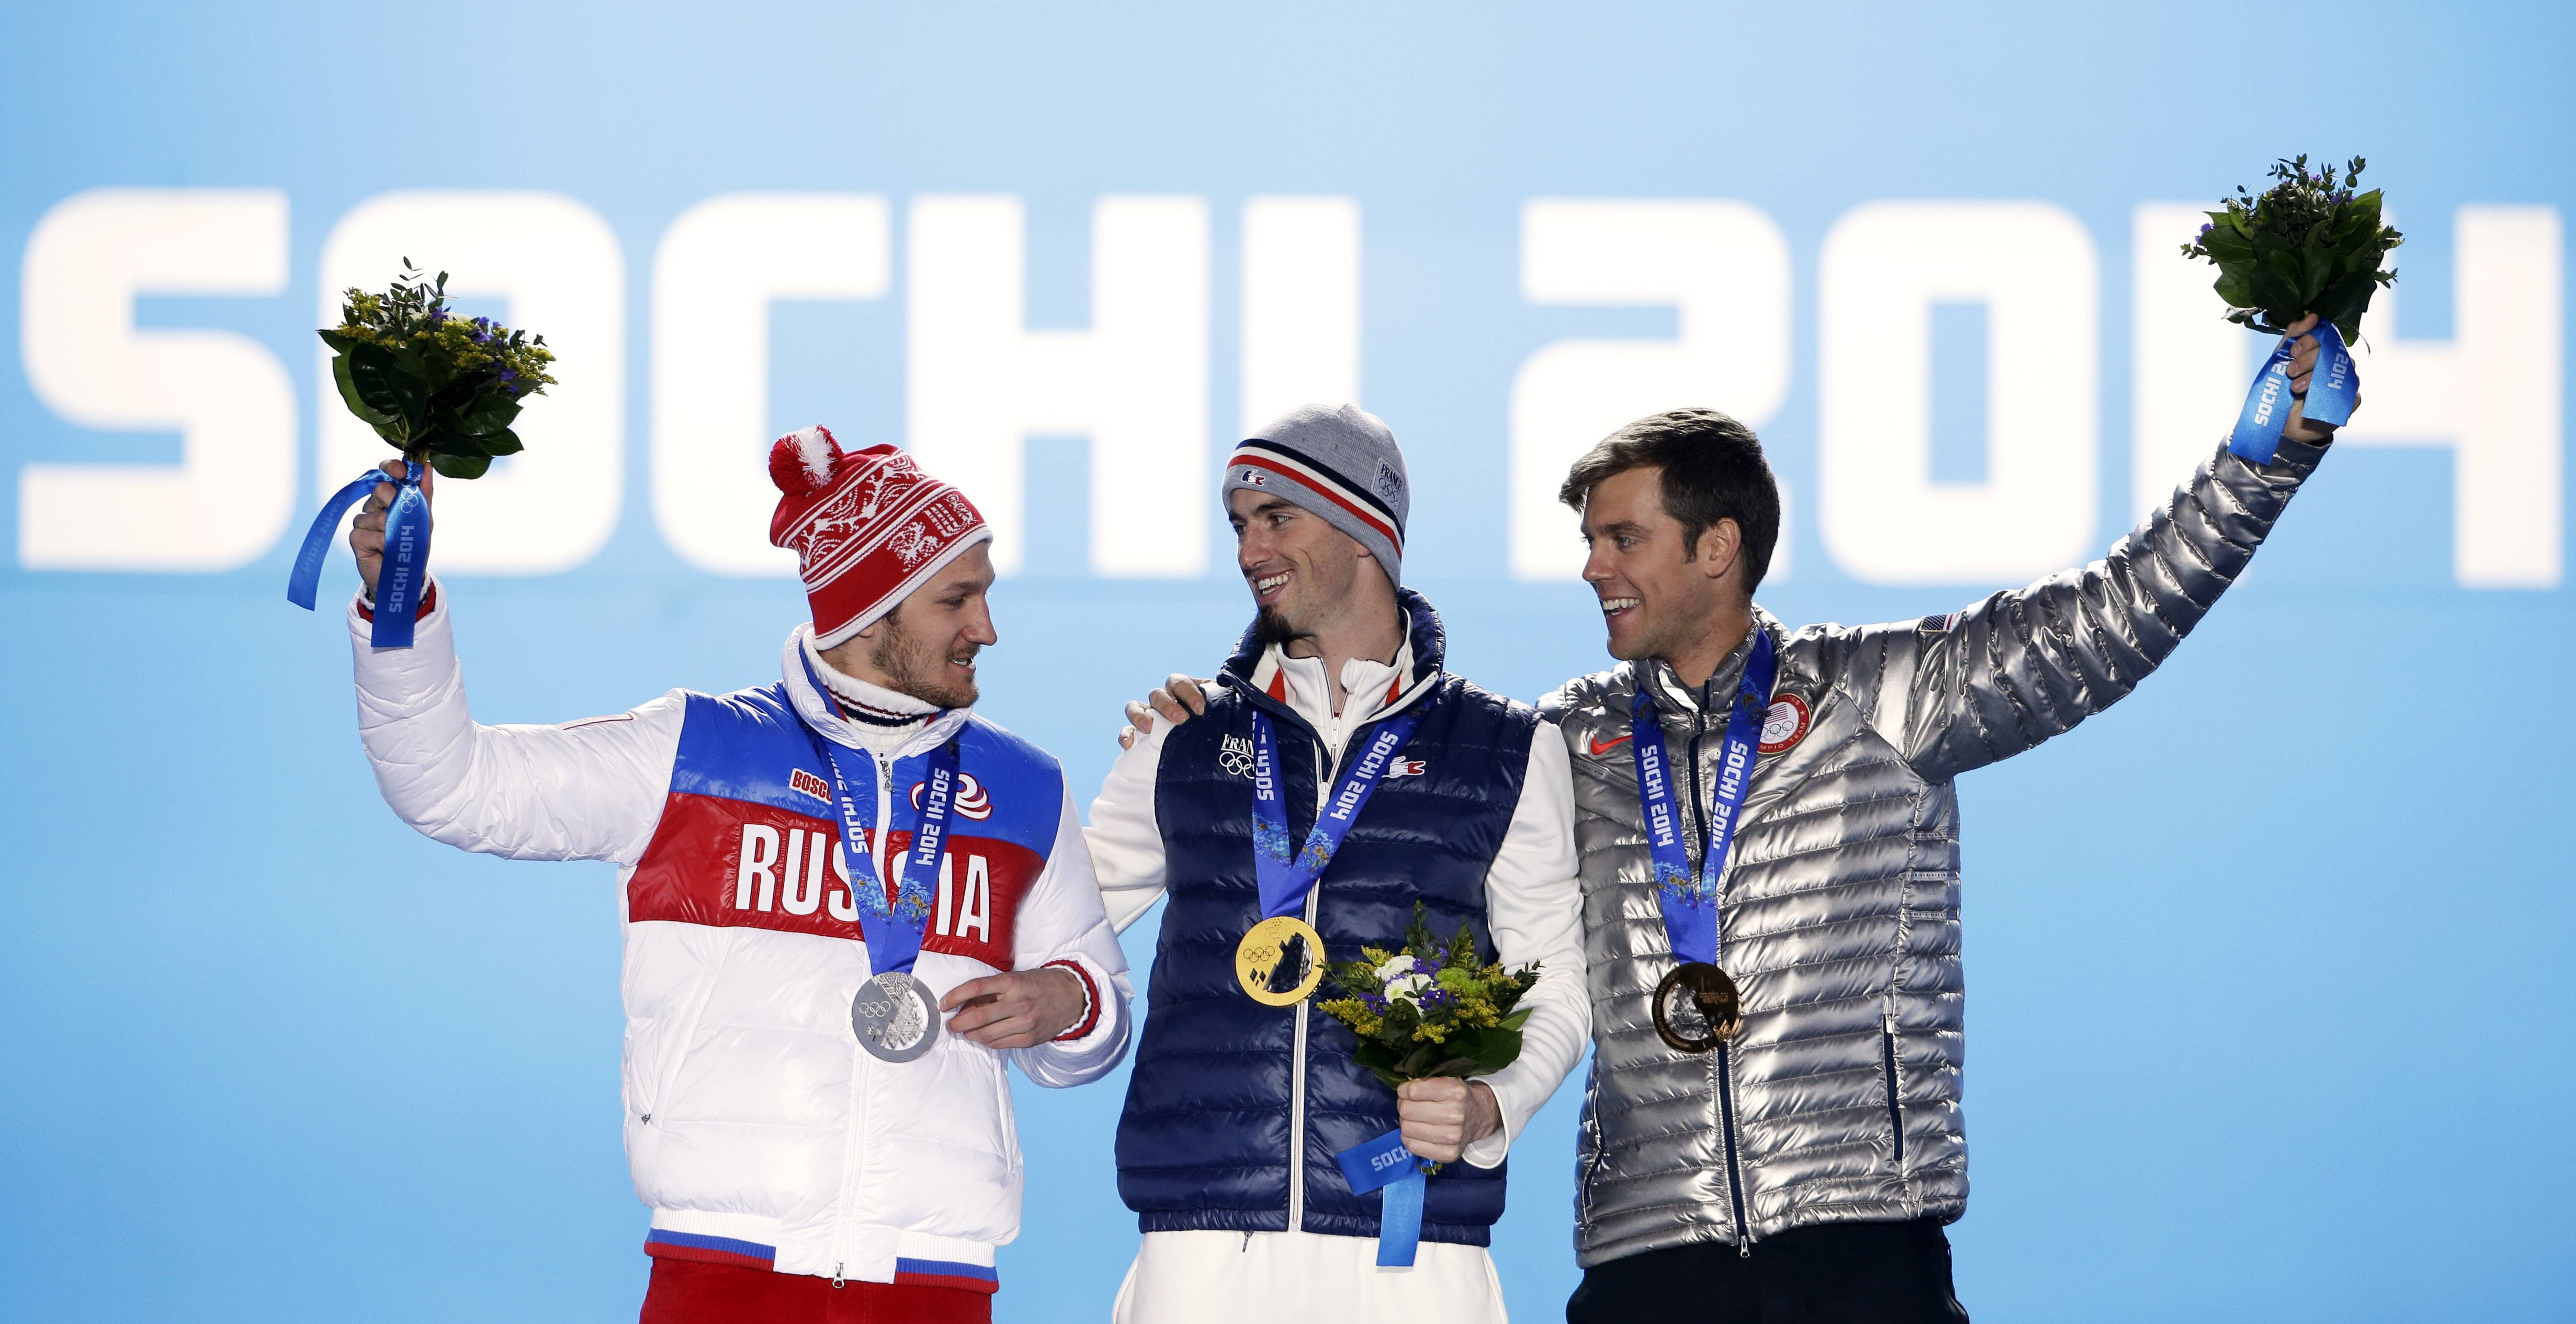 Men's snowboard cross medalists, from left, Russia's Nikolai Olyunin, silver, France's Pierre Vaultier, gold, and the United States' Alex Deibold, bronze, pose with their medals.